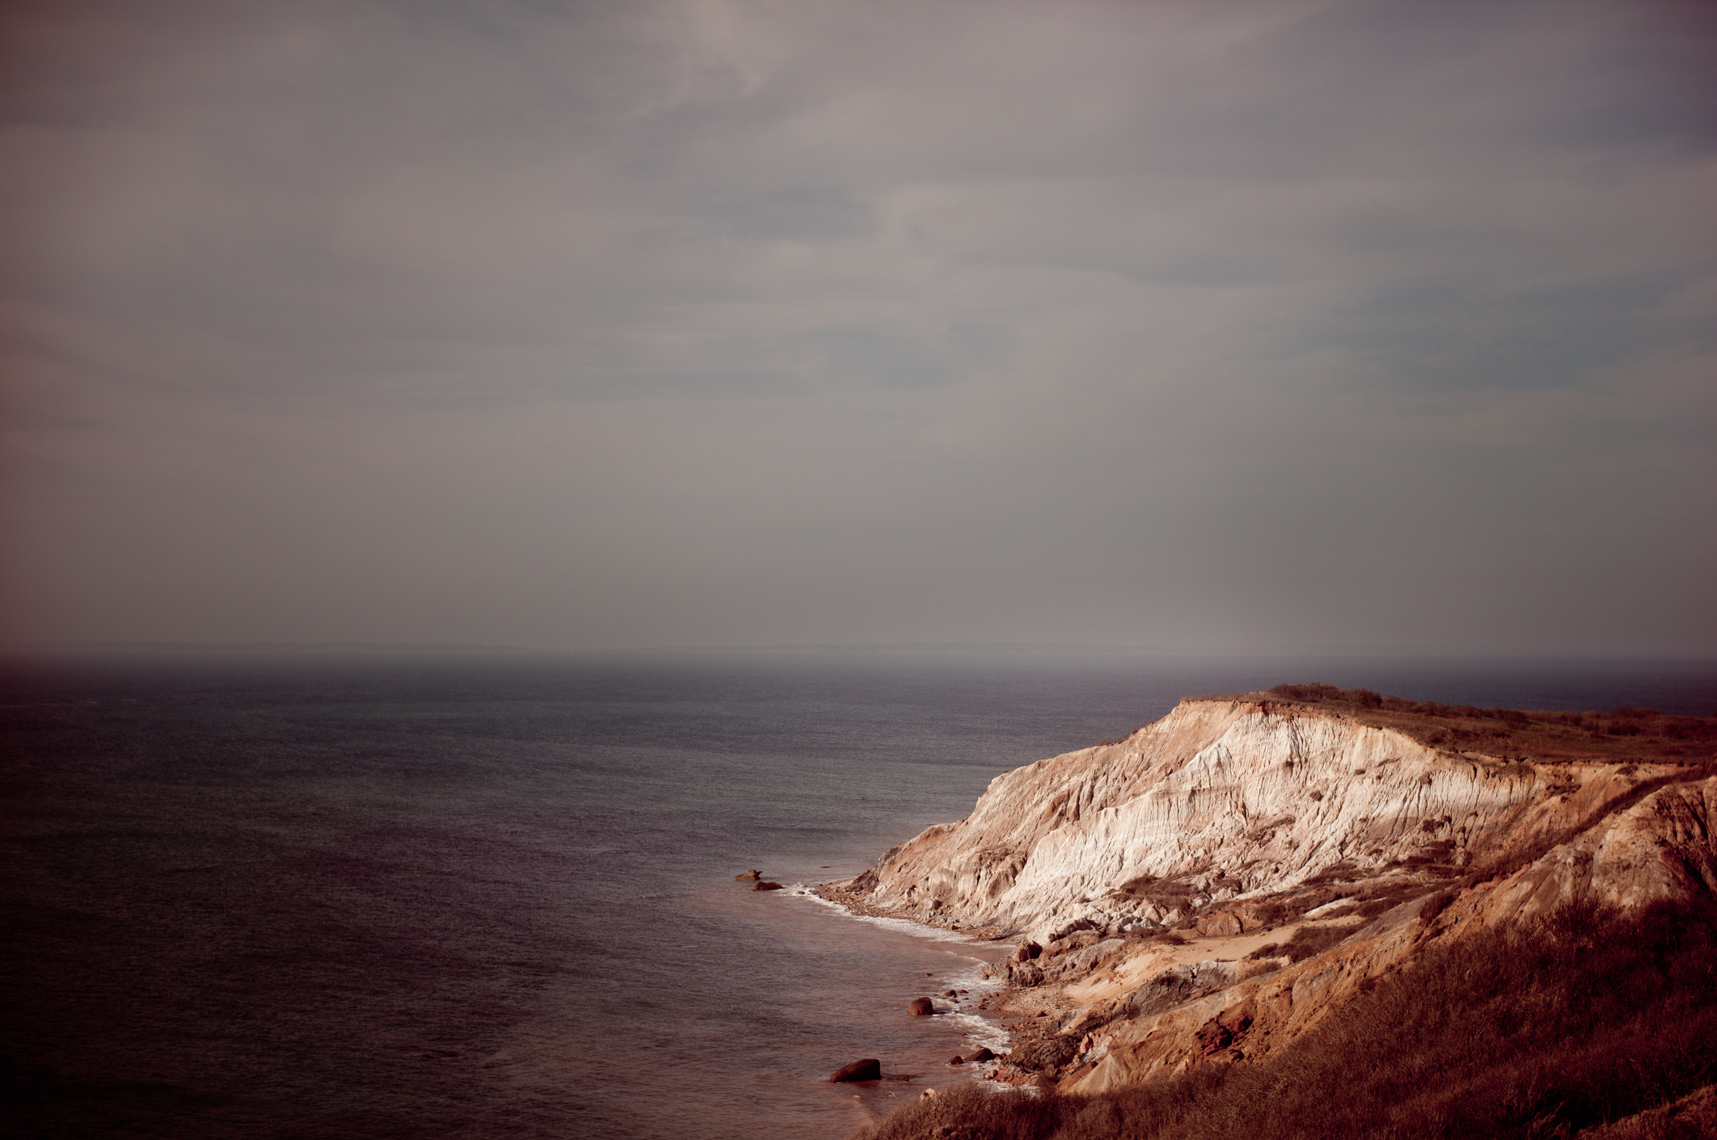 marthas_vineyard_cliffs.jpg